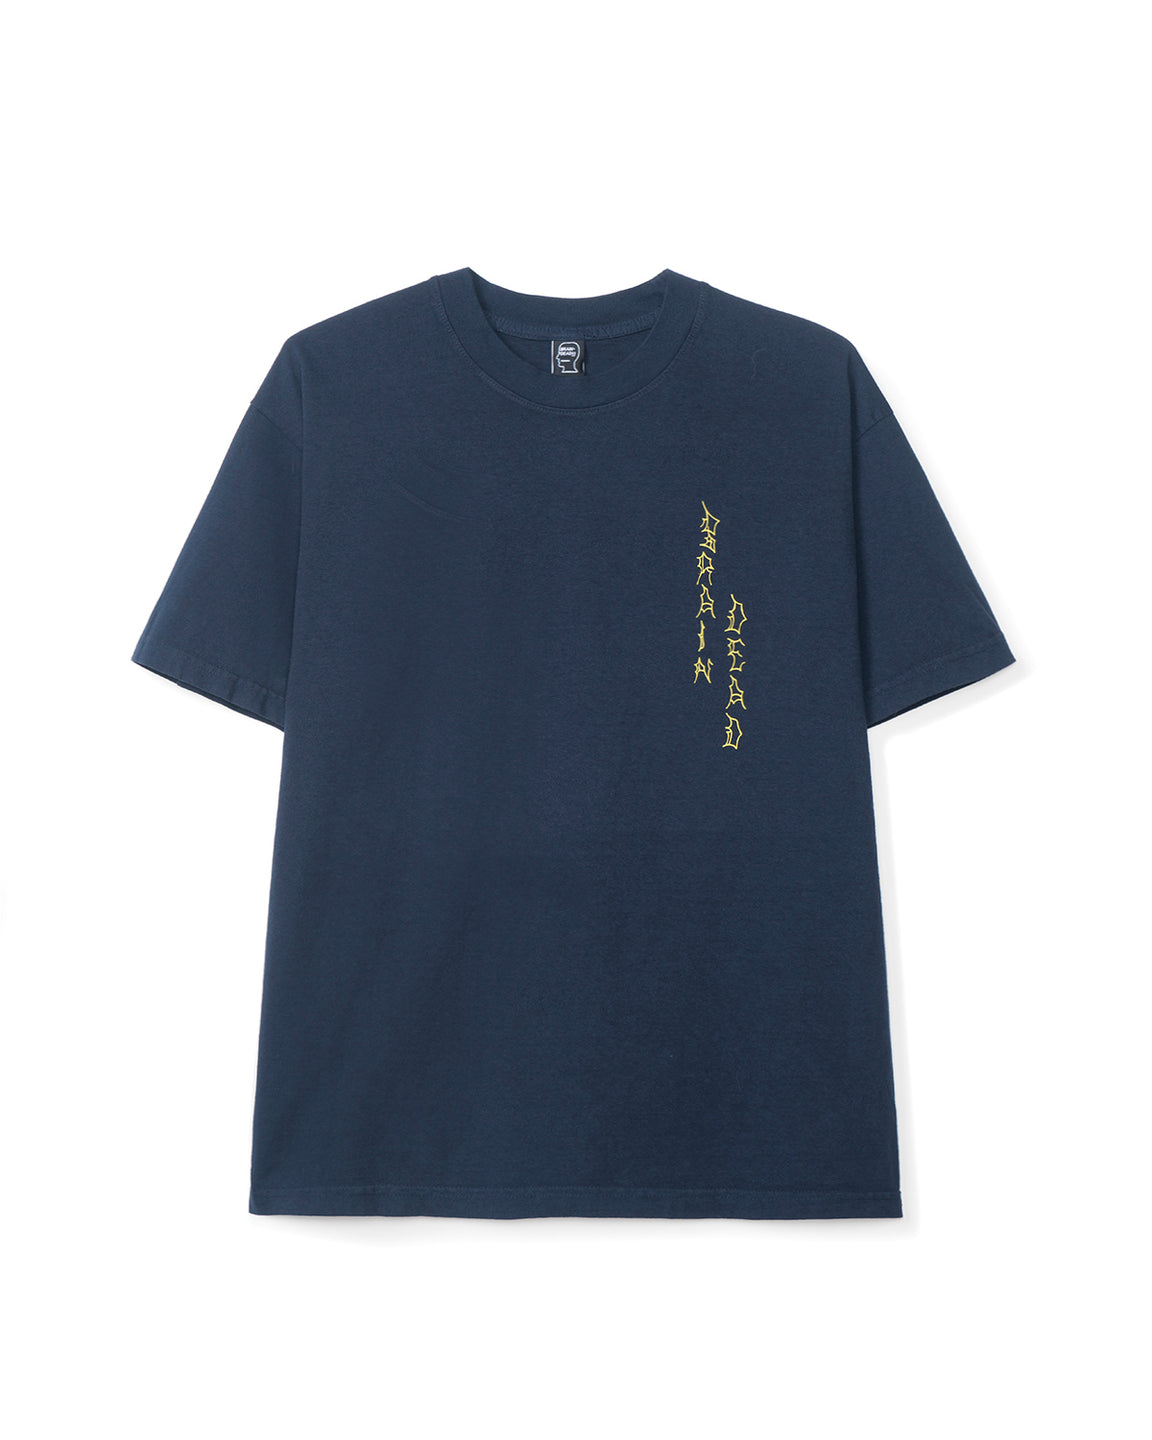 Jonny Negron Brain Knight T-shirt - Navy